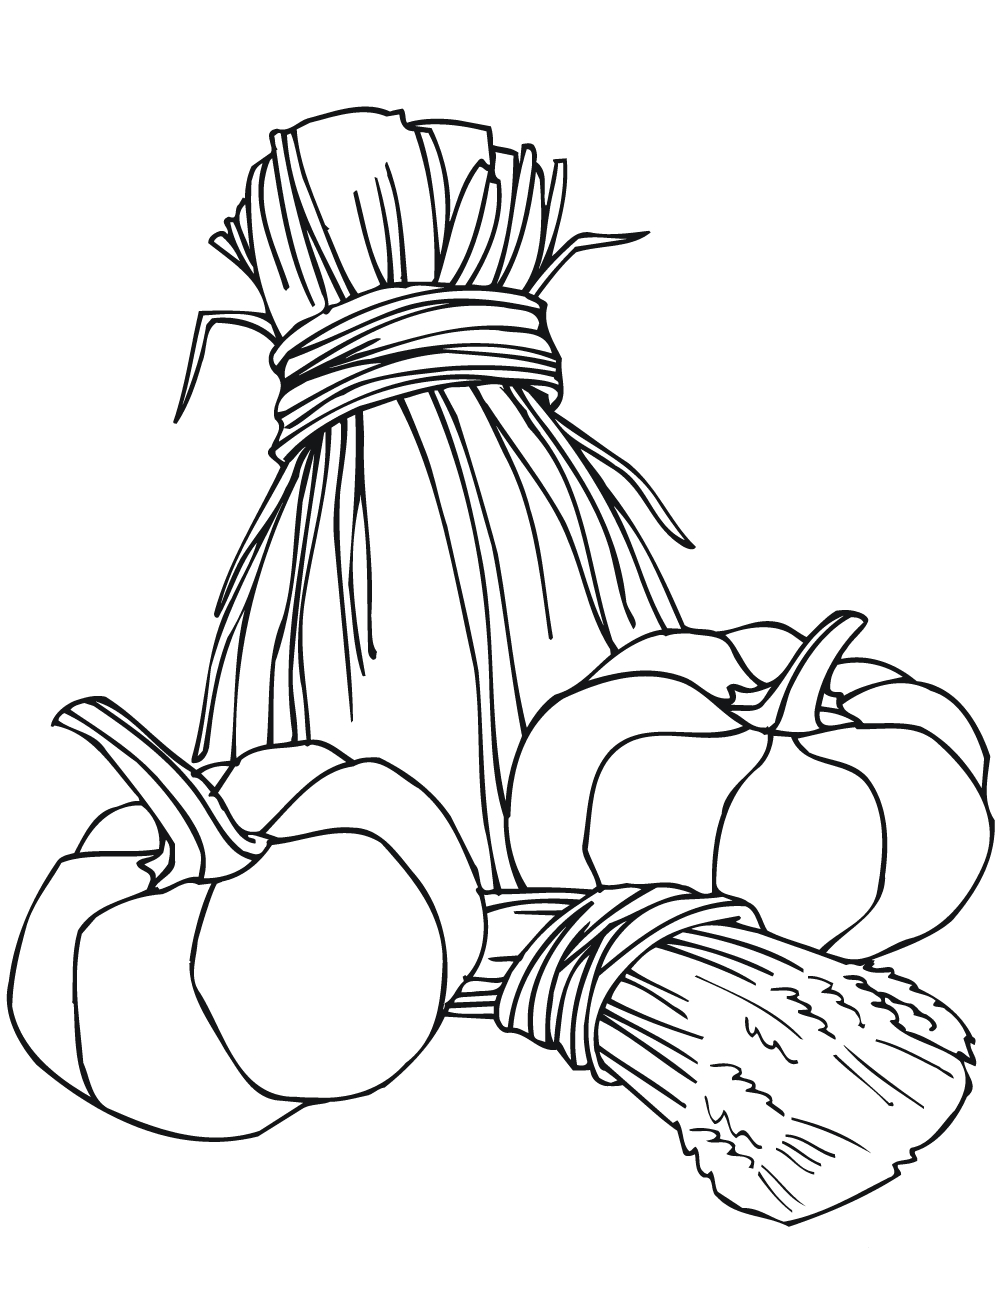 pumpkin colouring print download pumpkin coloring pages and benefits of colouring pumpkin 1 1